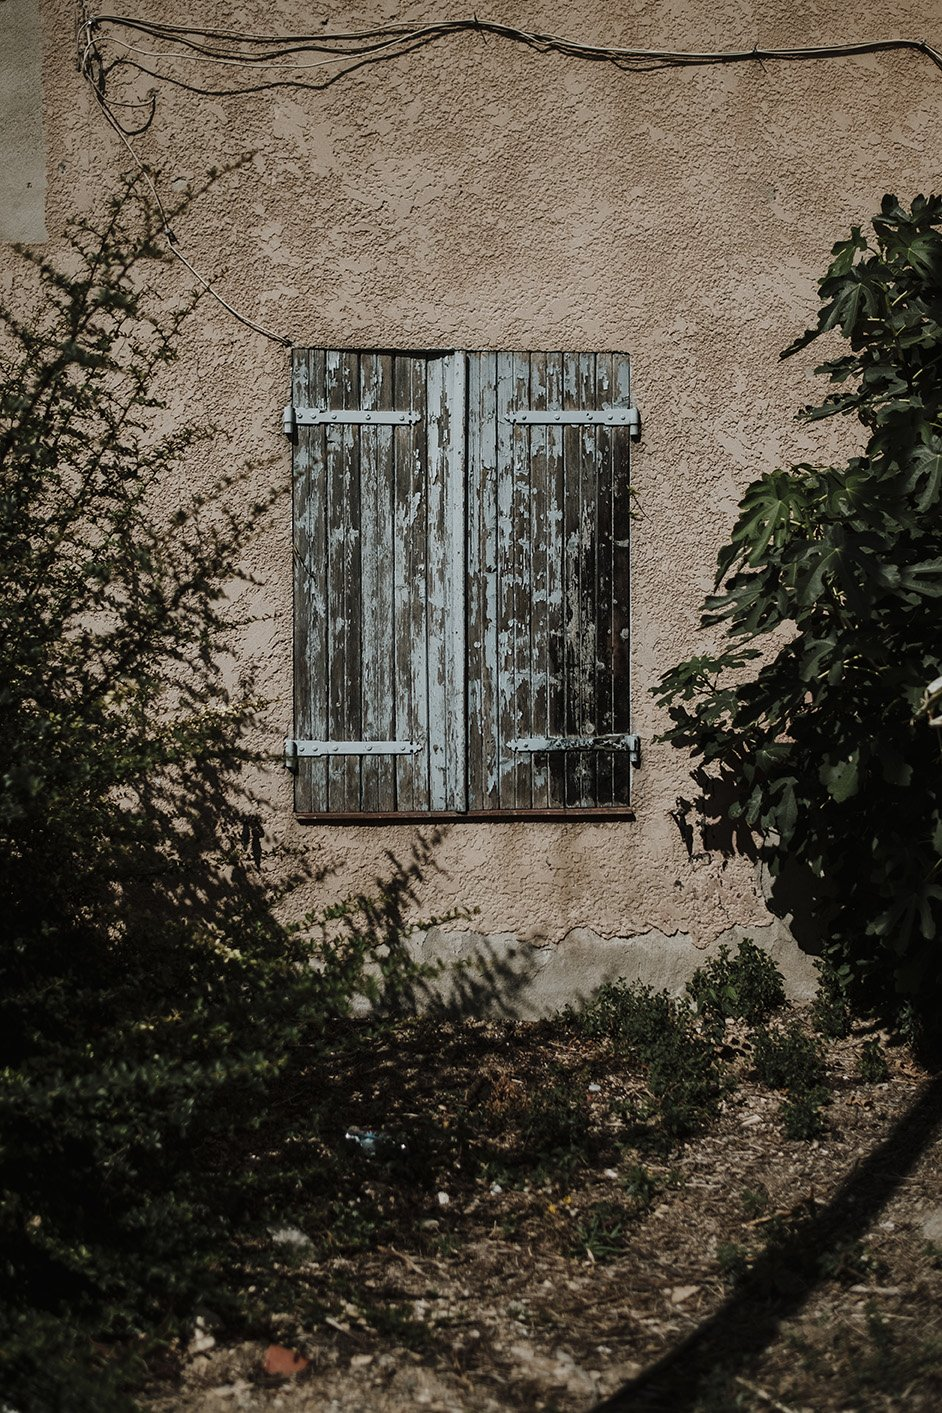 elisabetta riccio - detail of a window in the beautiful city of Aix-en-Provence